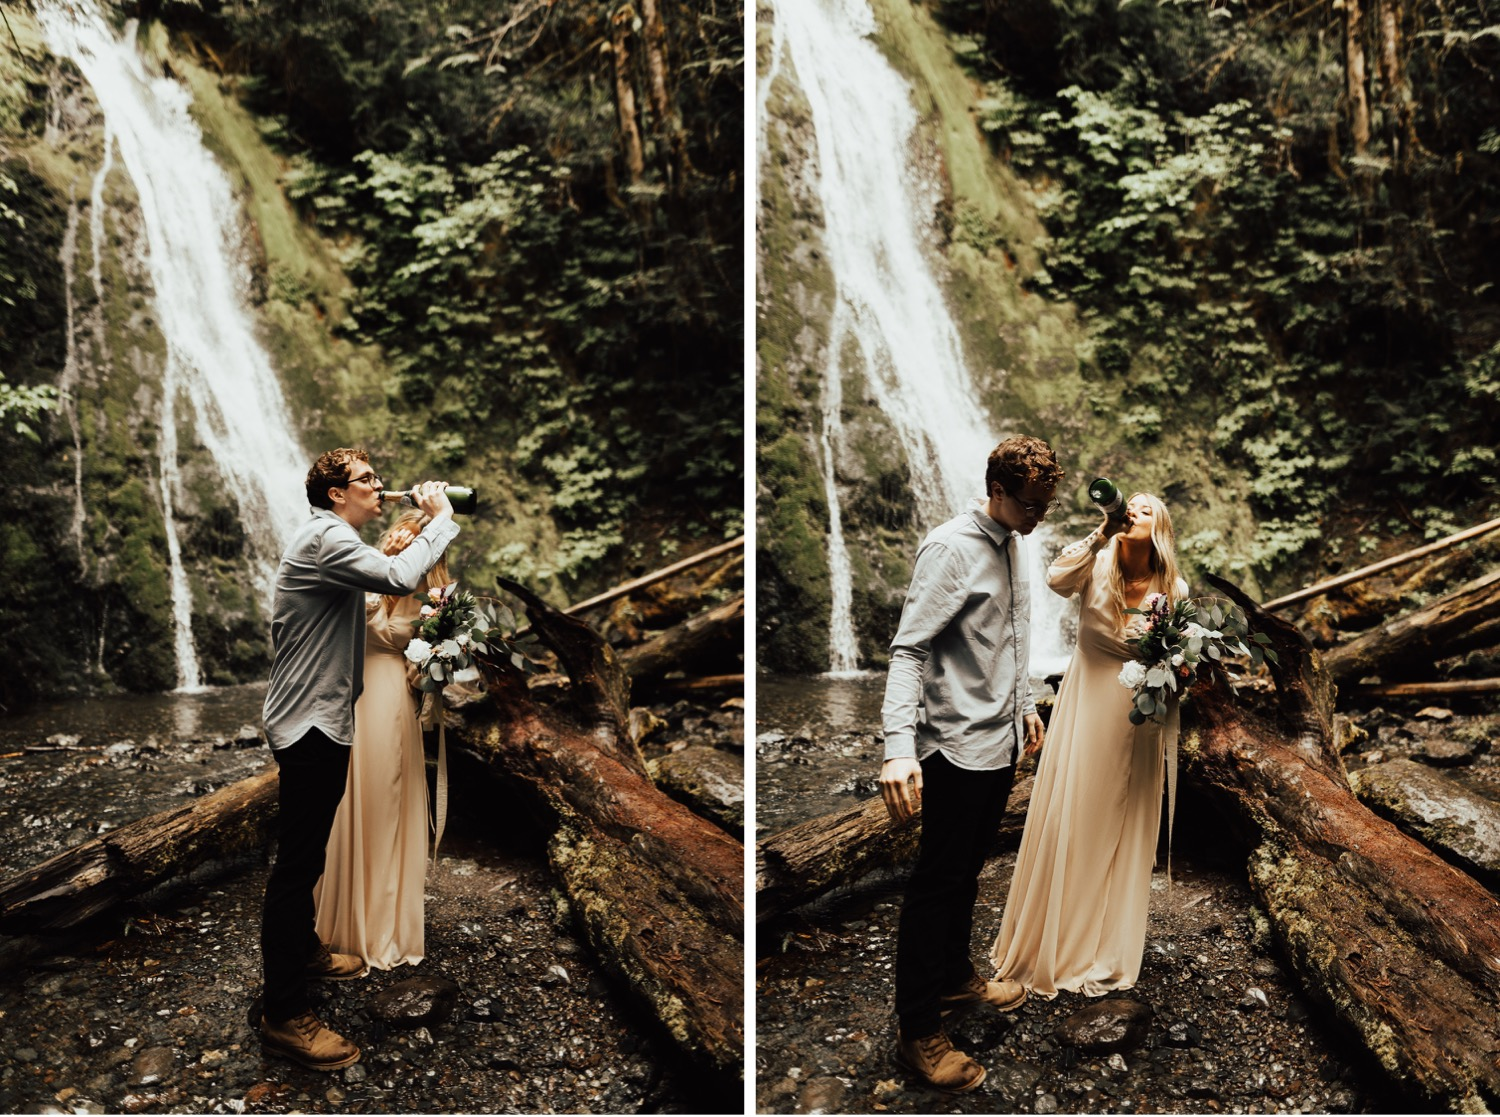 Olympic National Park Intimate Waterfall Elopement